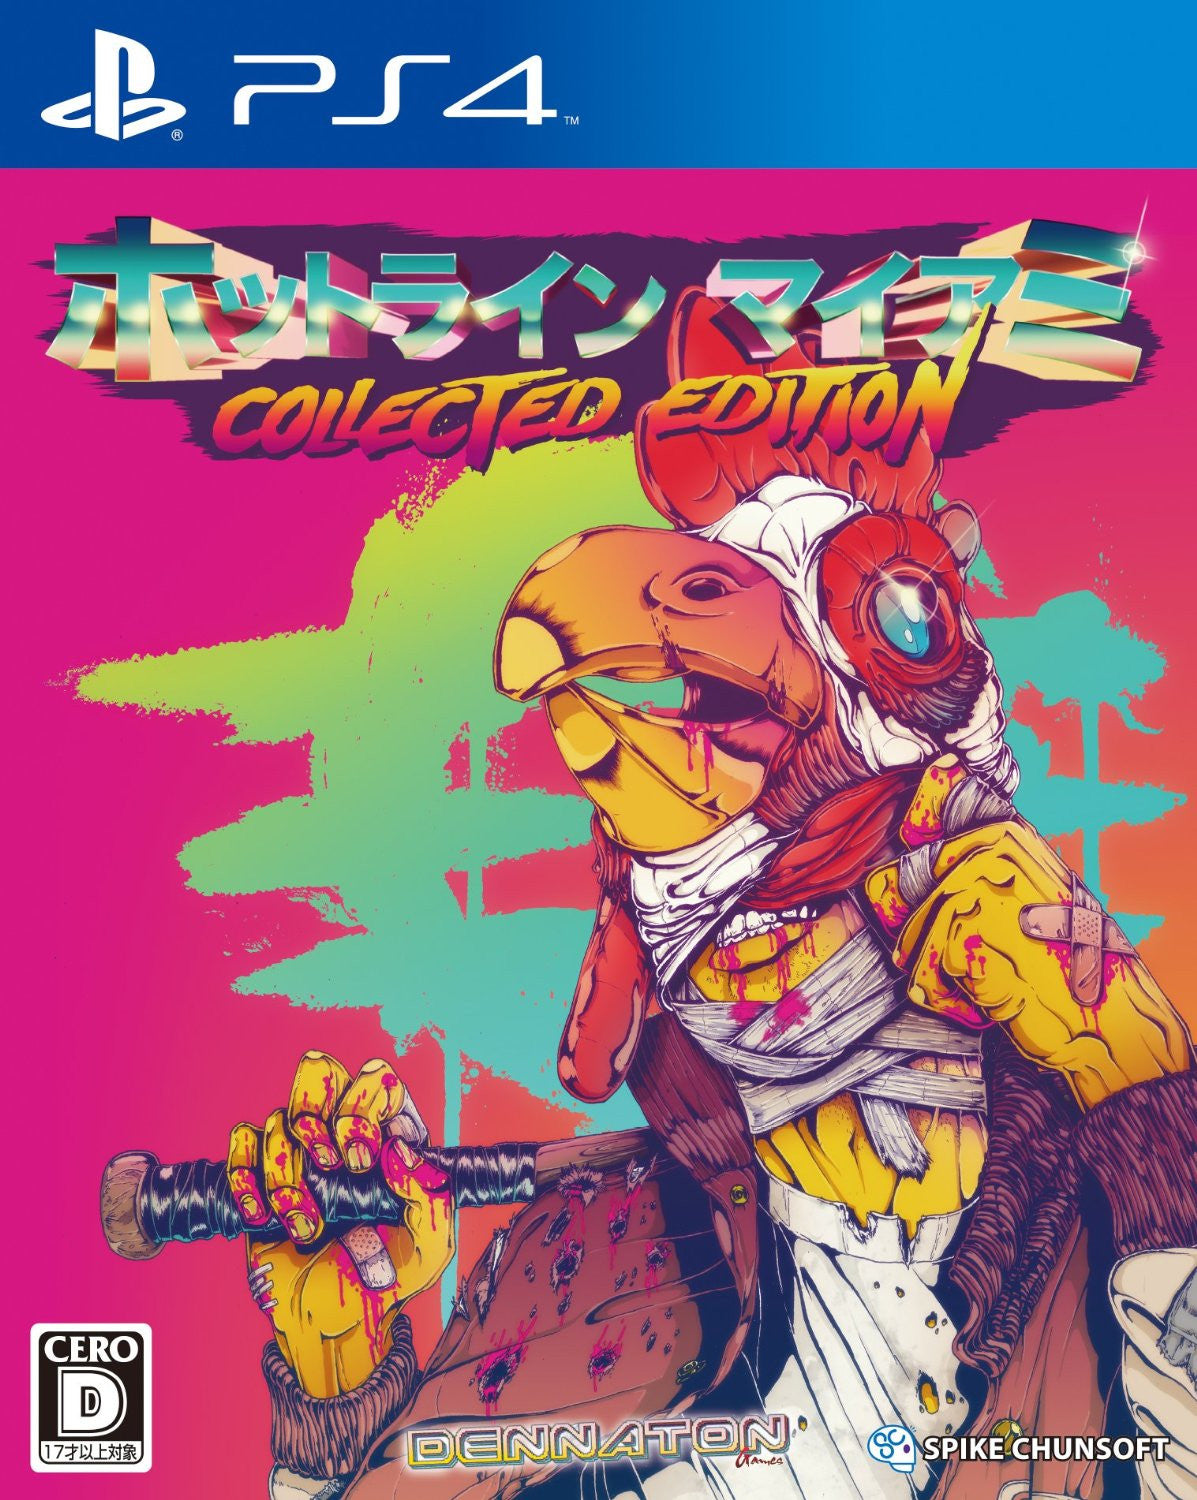 Image 1 for Hotline Miami Collected Edition